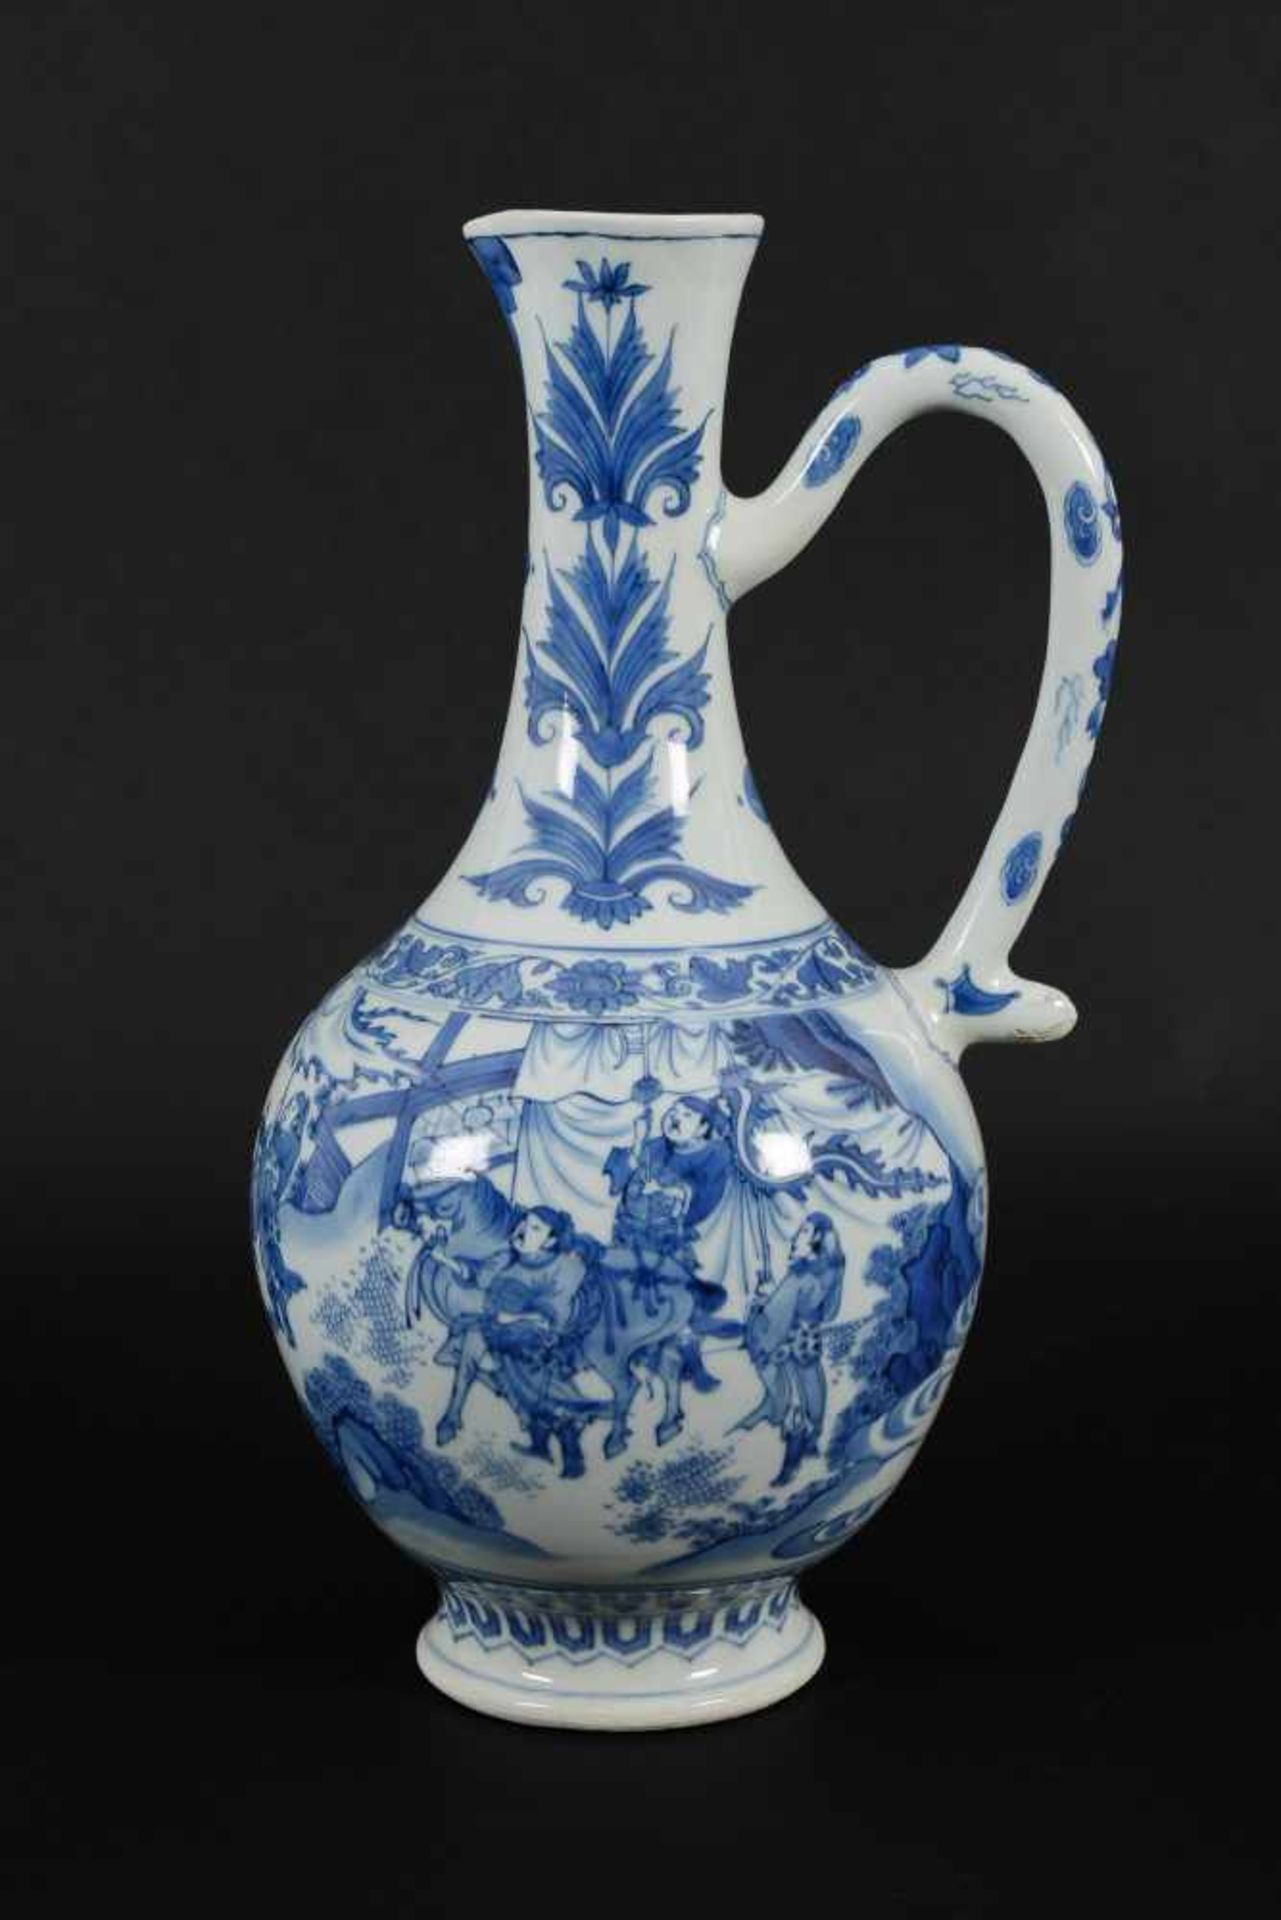 A blue and white porcelain jug, decorated with figures, a river landscape and flowers. Unmarked. - Bild 9 aus 9